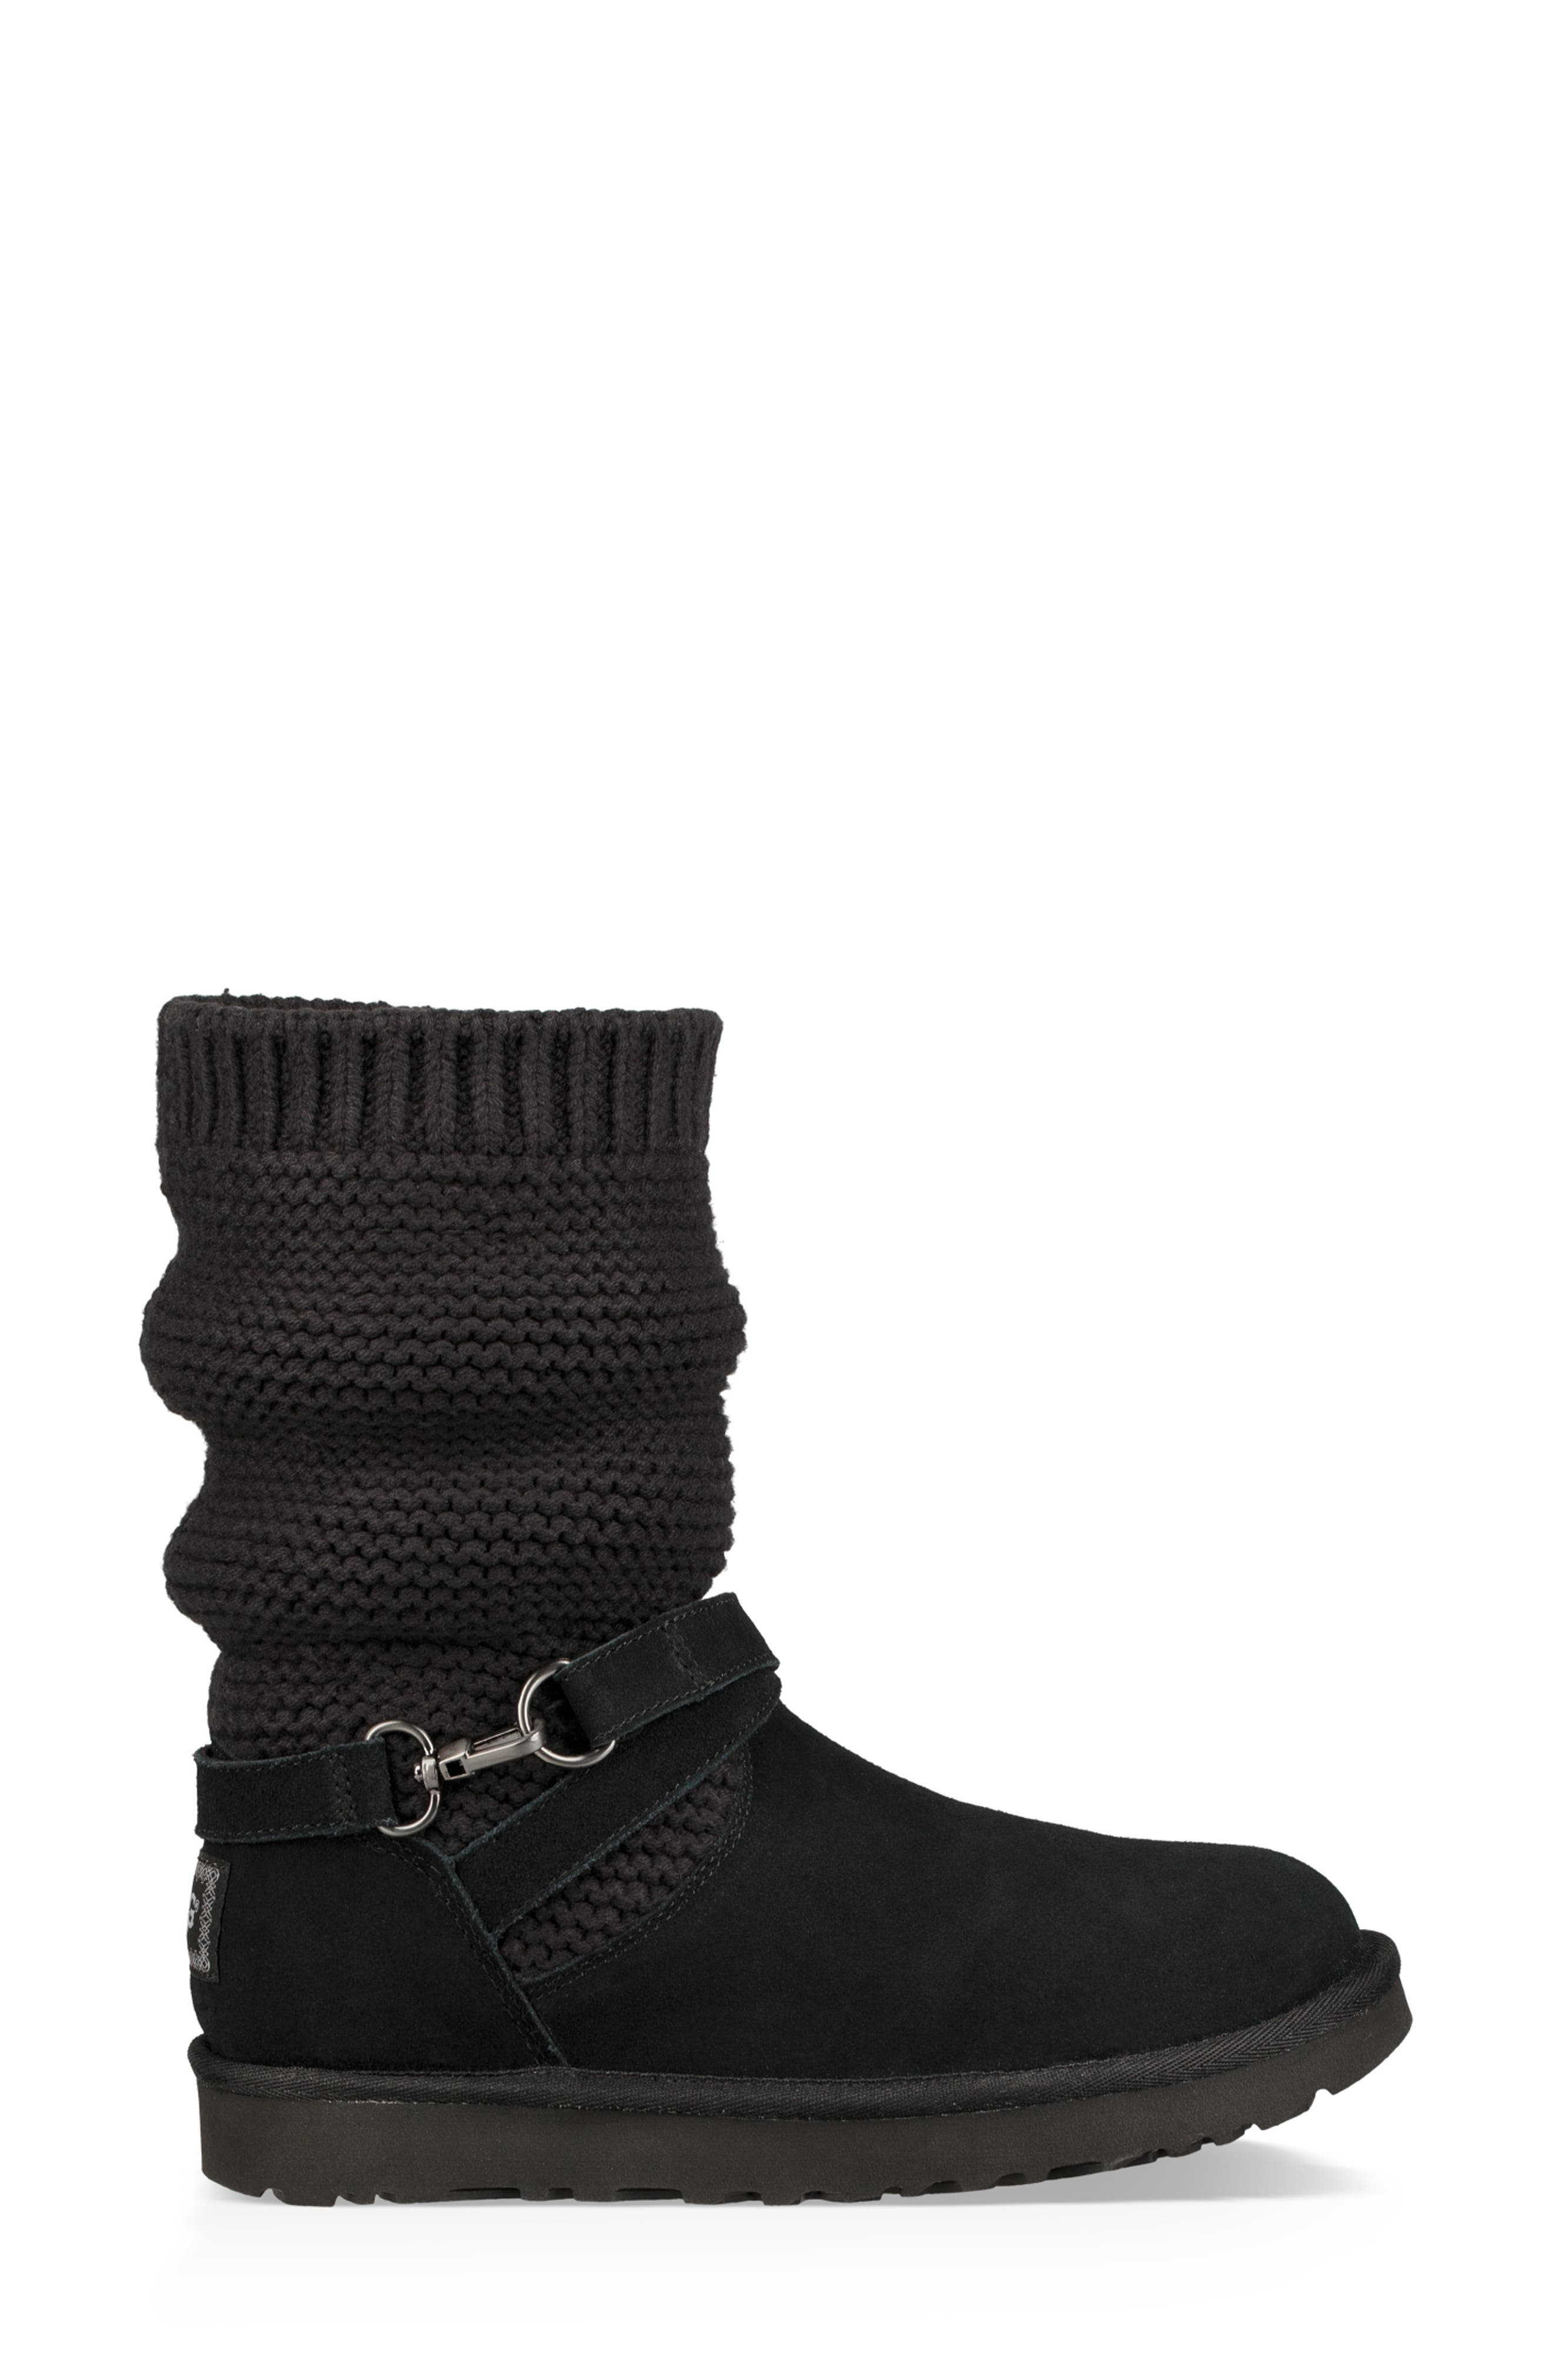 UGGpure<sup>™</sup> Strappy Purl Knit Bootie,                             Alternate thumbnail 4, color,                             BLACK SUEDE